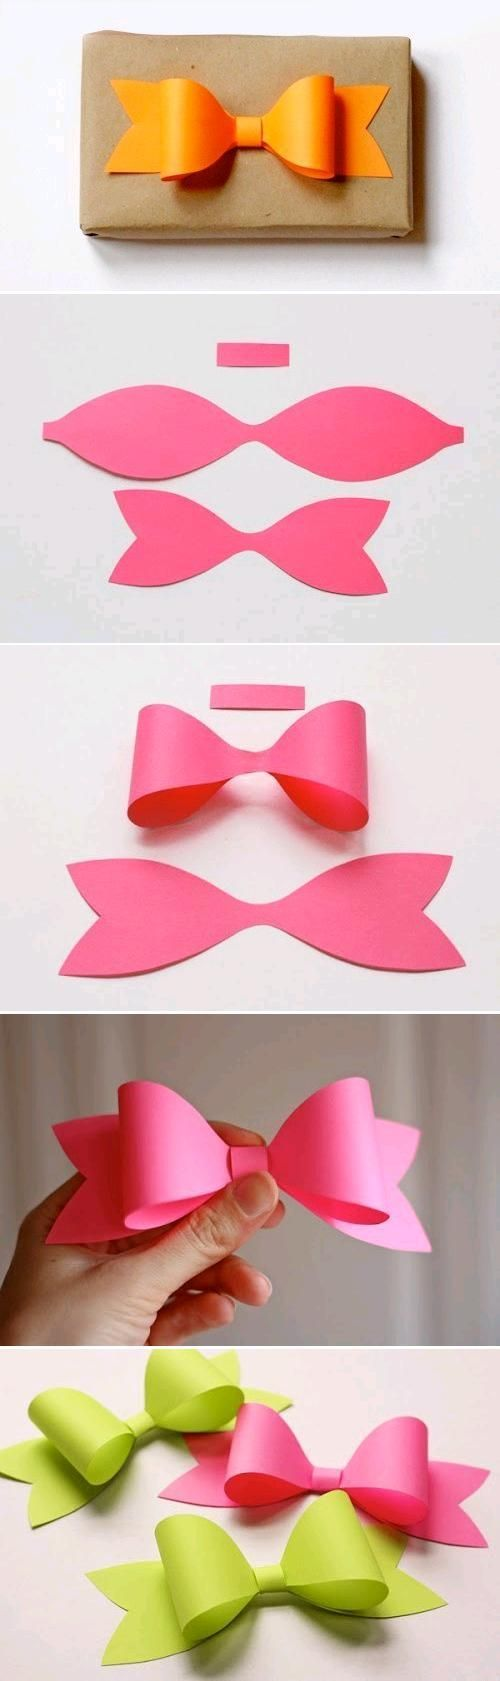 Gift wrap hacks - make your own gift bow